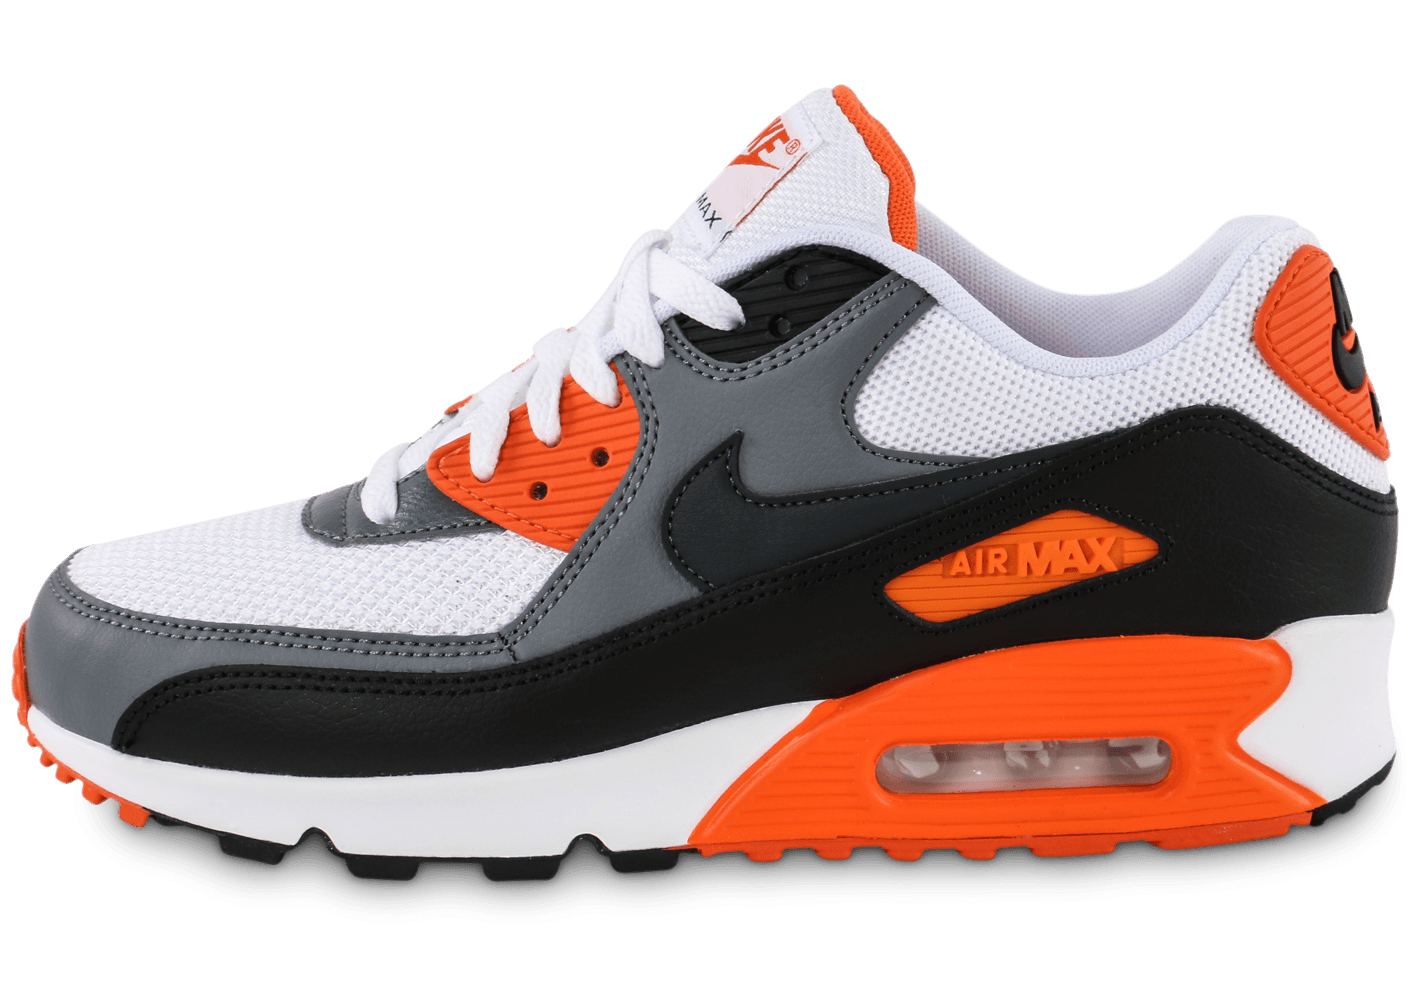 huge selection of 5c588 fdc9d Nike Air Max 90 Essential blanc orange - Chaussures Baskets homme -  Chausport